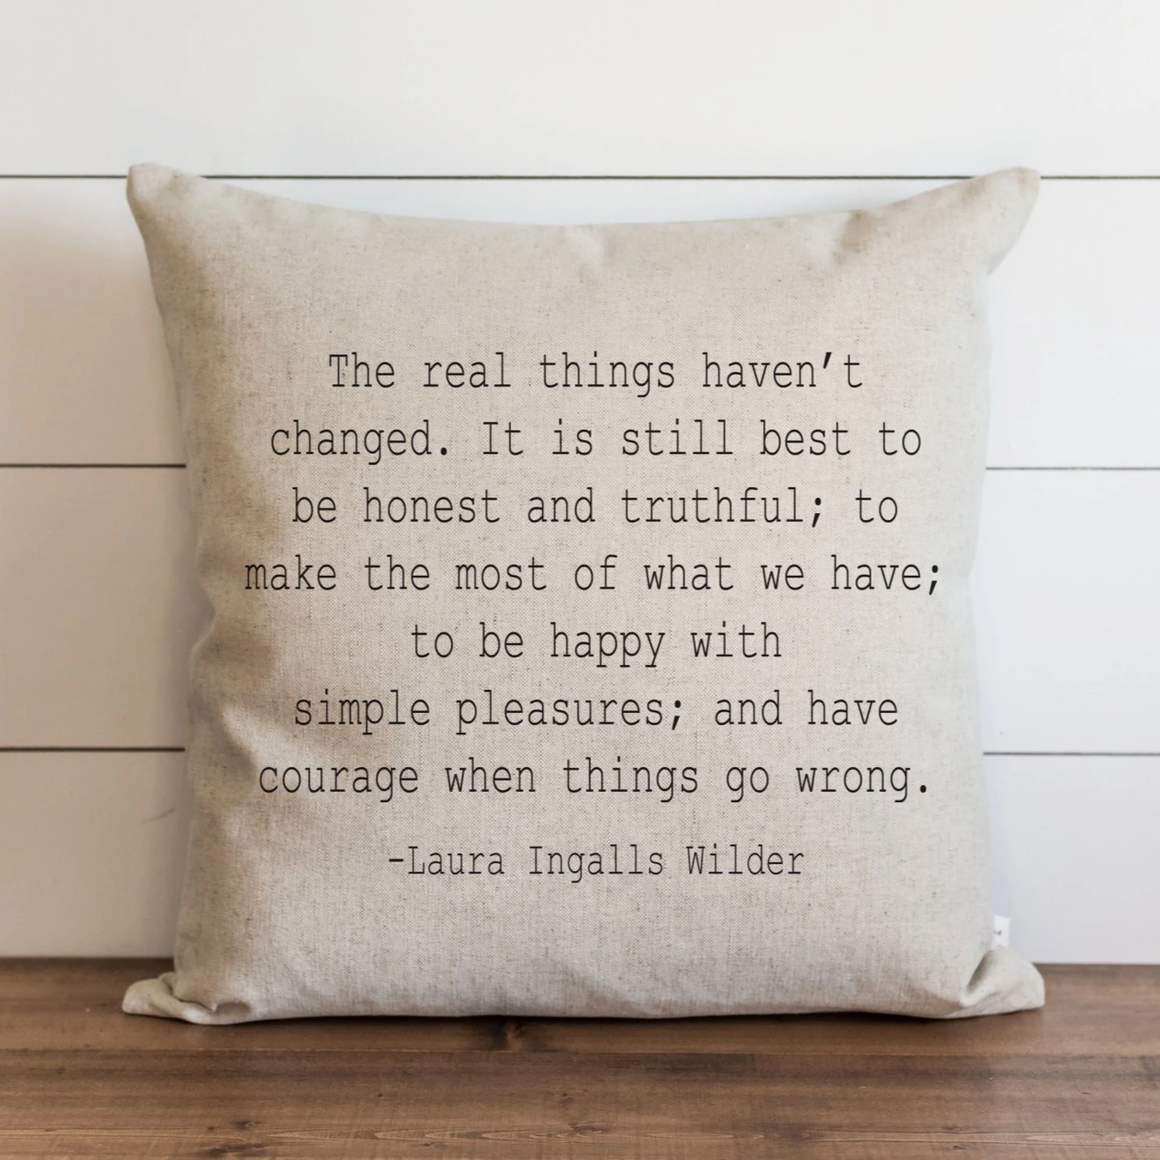 This  Simple Pleasures Pillow Cover brings graceful, fresh and elegant style to your farmhouse. Custom designed and handcrafted in the USA from the highest quality materials. The warm oatmeal cotton/linen blend adds rustic, elegance to any room. Made in the USA